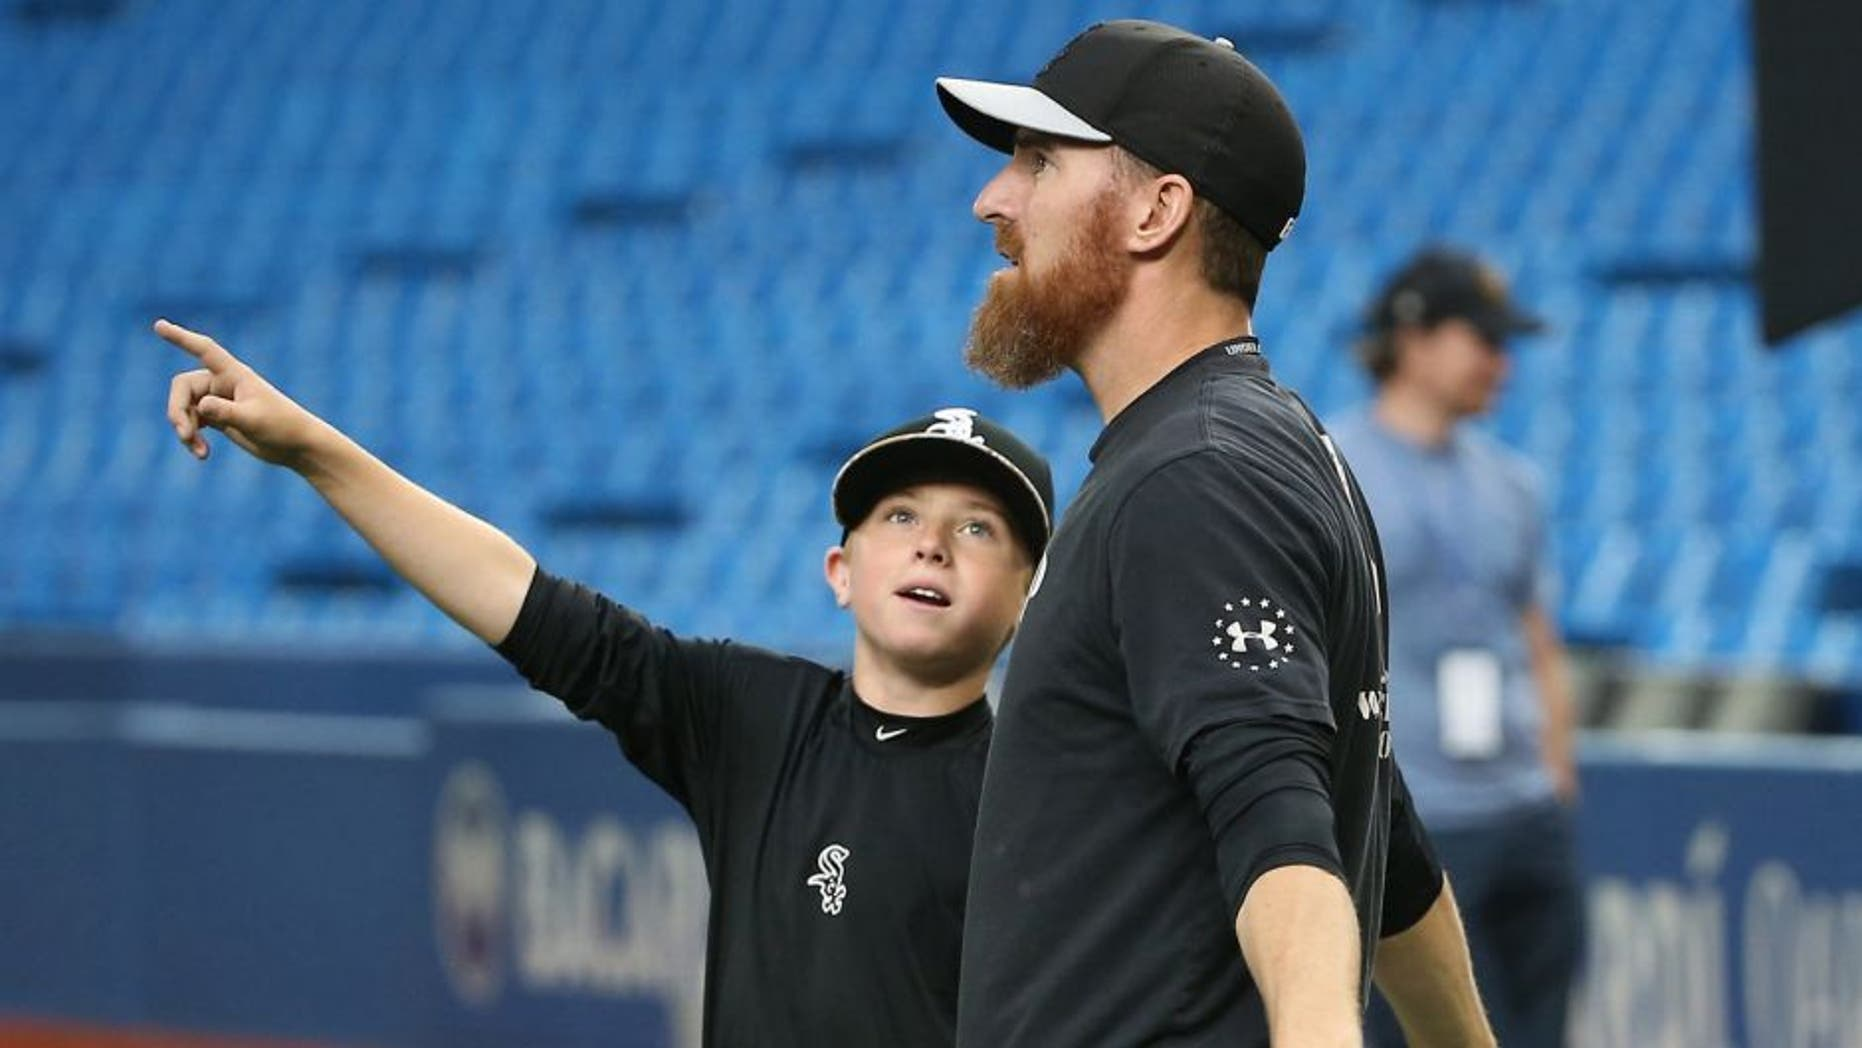 TORONTO, CANADA - MAY 25: Drake the son of Adam LaRoche #25 of the Chicago White Sox points to the roof as it opens during batting practice before the start of MLB game action against the Toronto Blue Jays on May 25, 2015 at Rogers Centre in Toronto, Ontario, Canada. (Photo by Tom Szczerbowski/Getty Images)